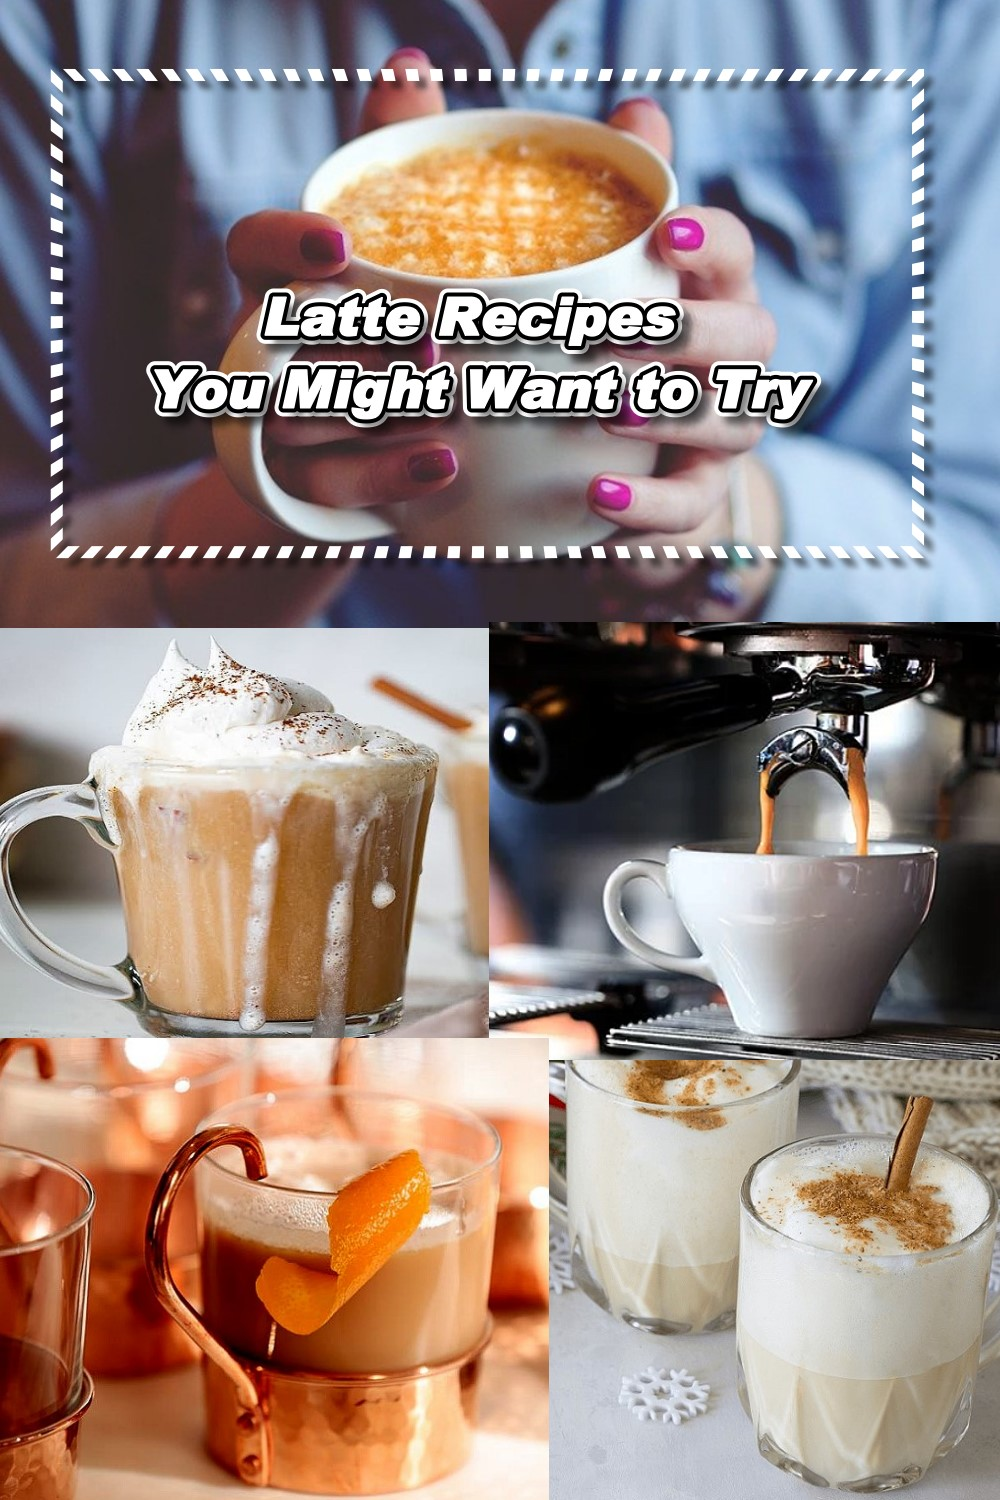 Latte Recipes You Might Want to Try